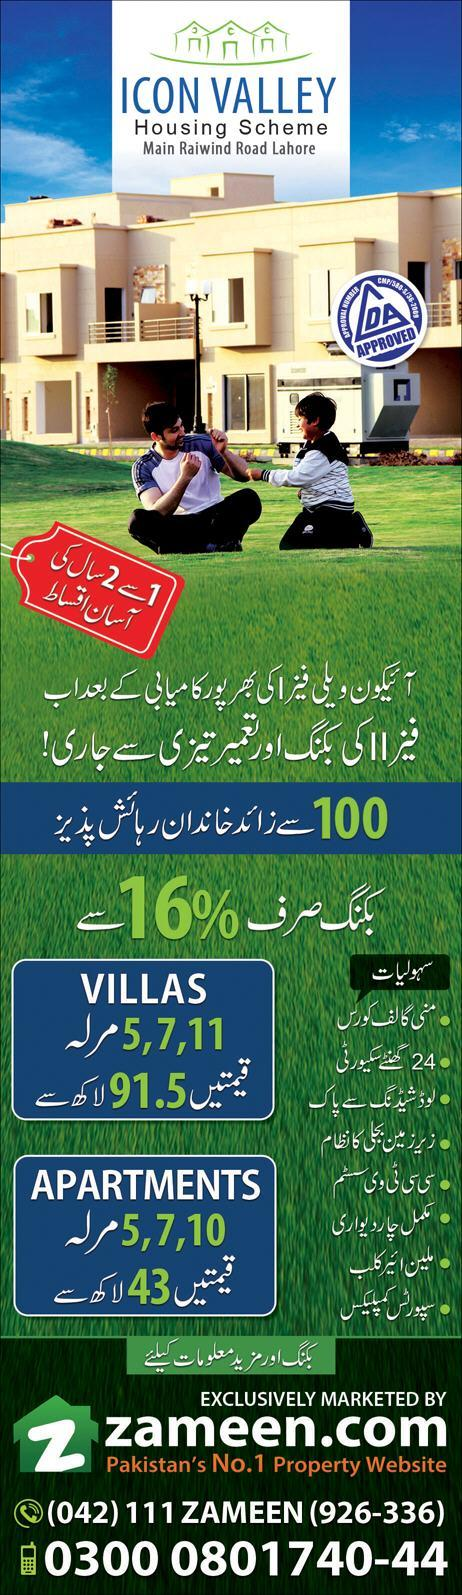 Icon Valley Housing Scheme Raiwind Road Lahore Phase-II Launched